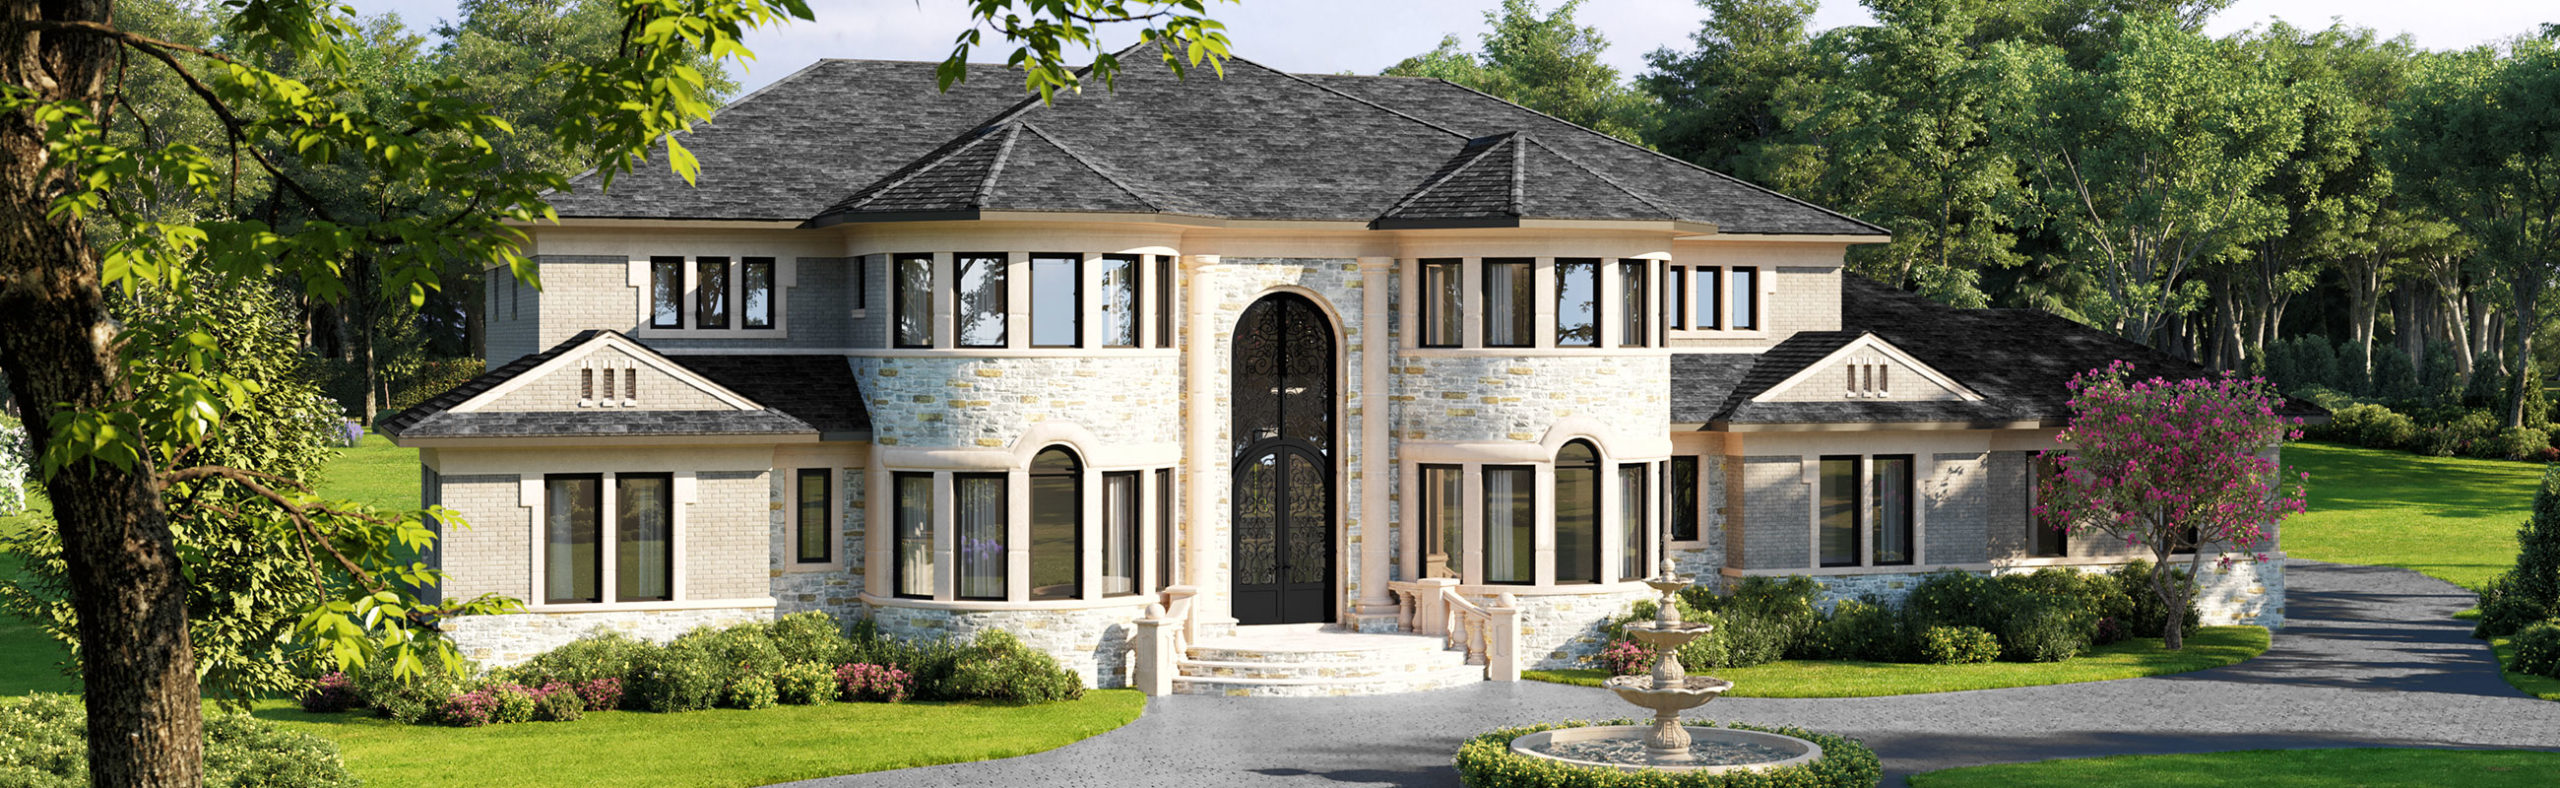 exterior rendering of a proposed home for the lots at Falconhurst, Potomac, MD